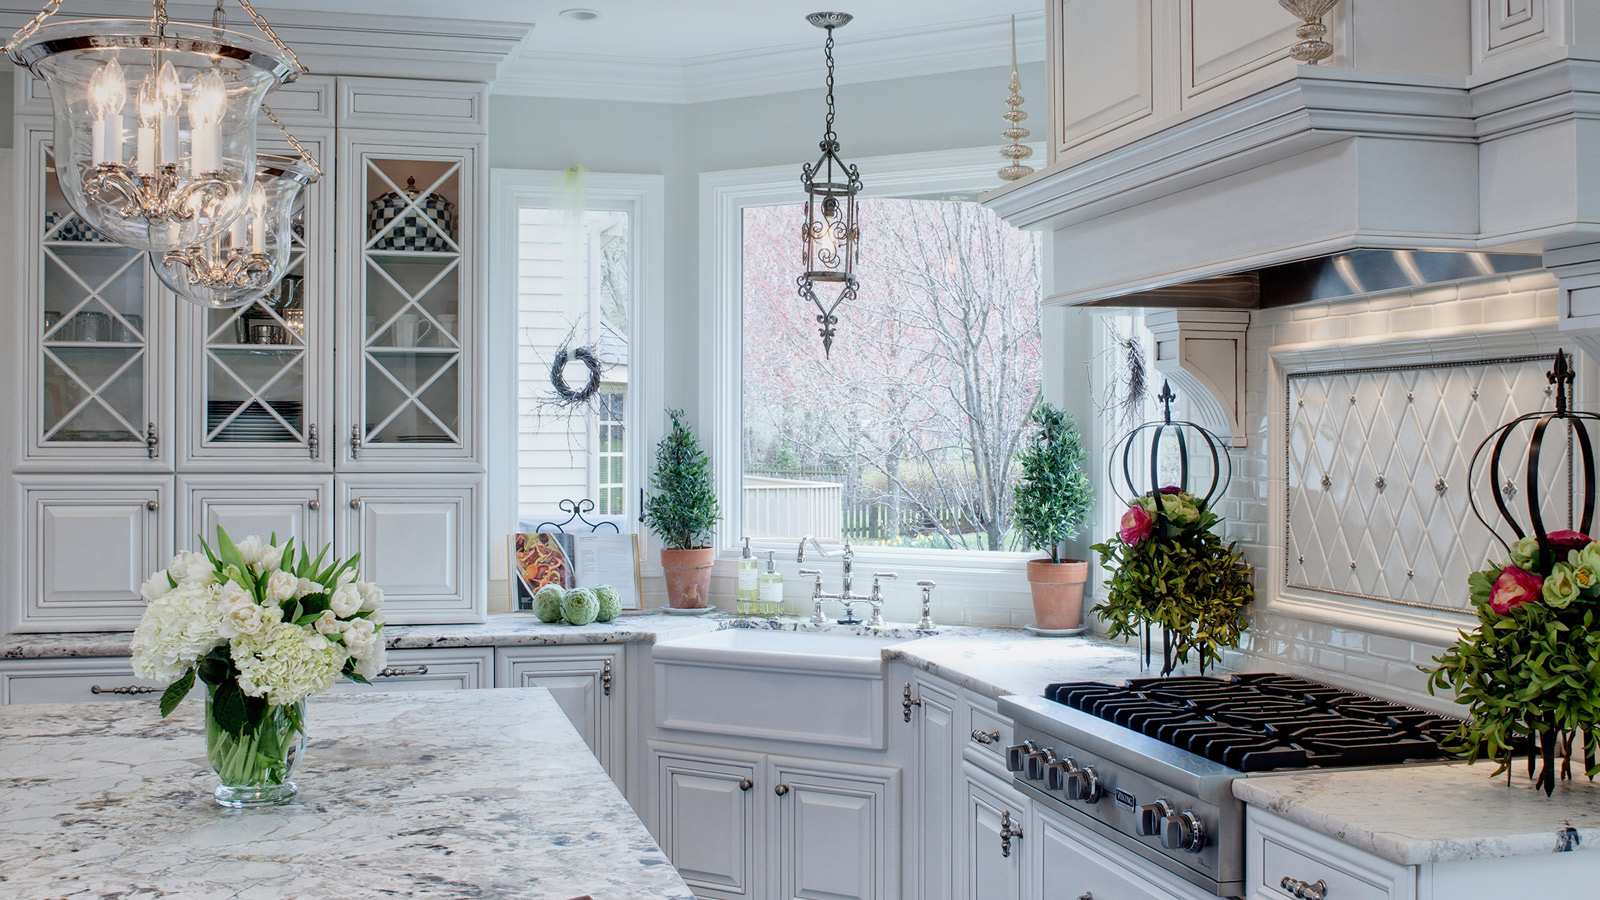 1600-x-900-Well-Dressed-Traditional-Glen-Ellyn-Kitchen-drury-design2